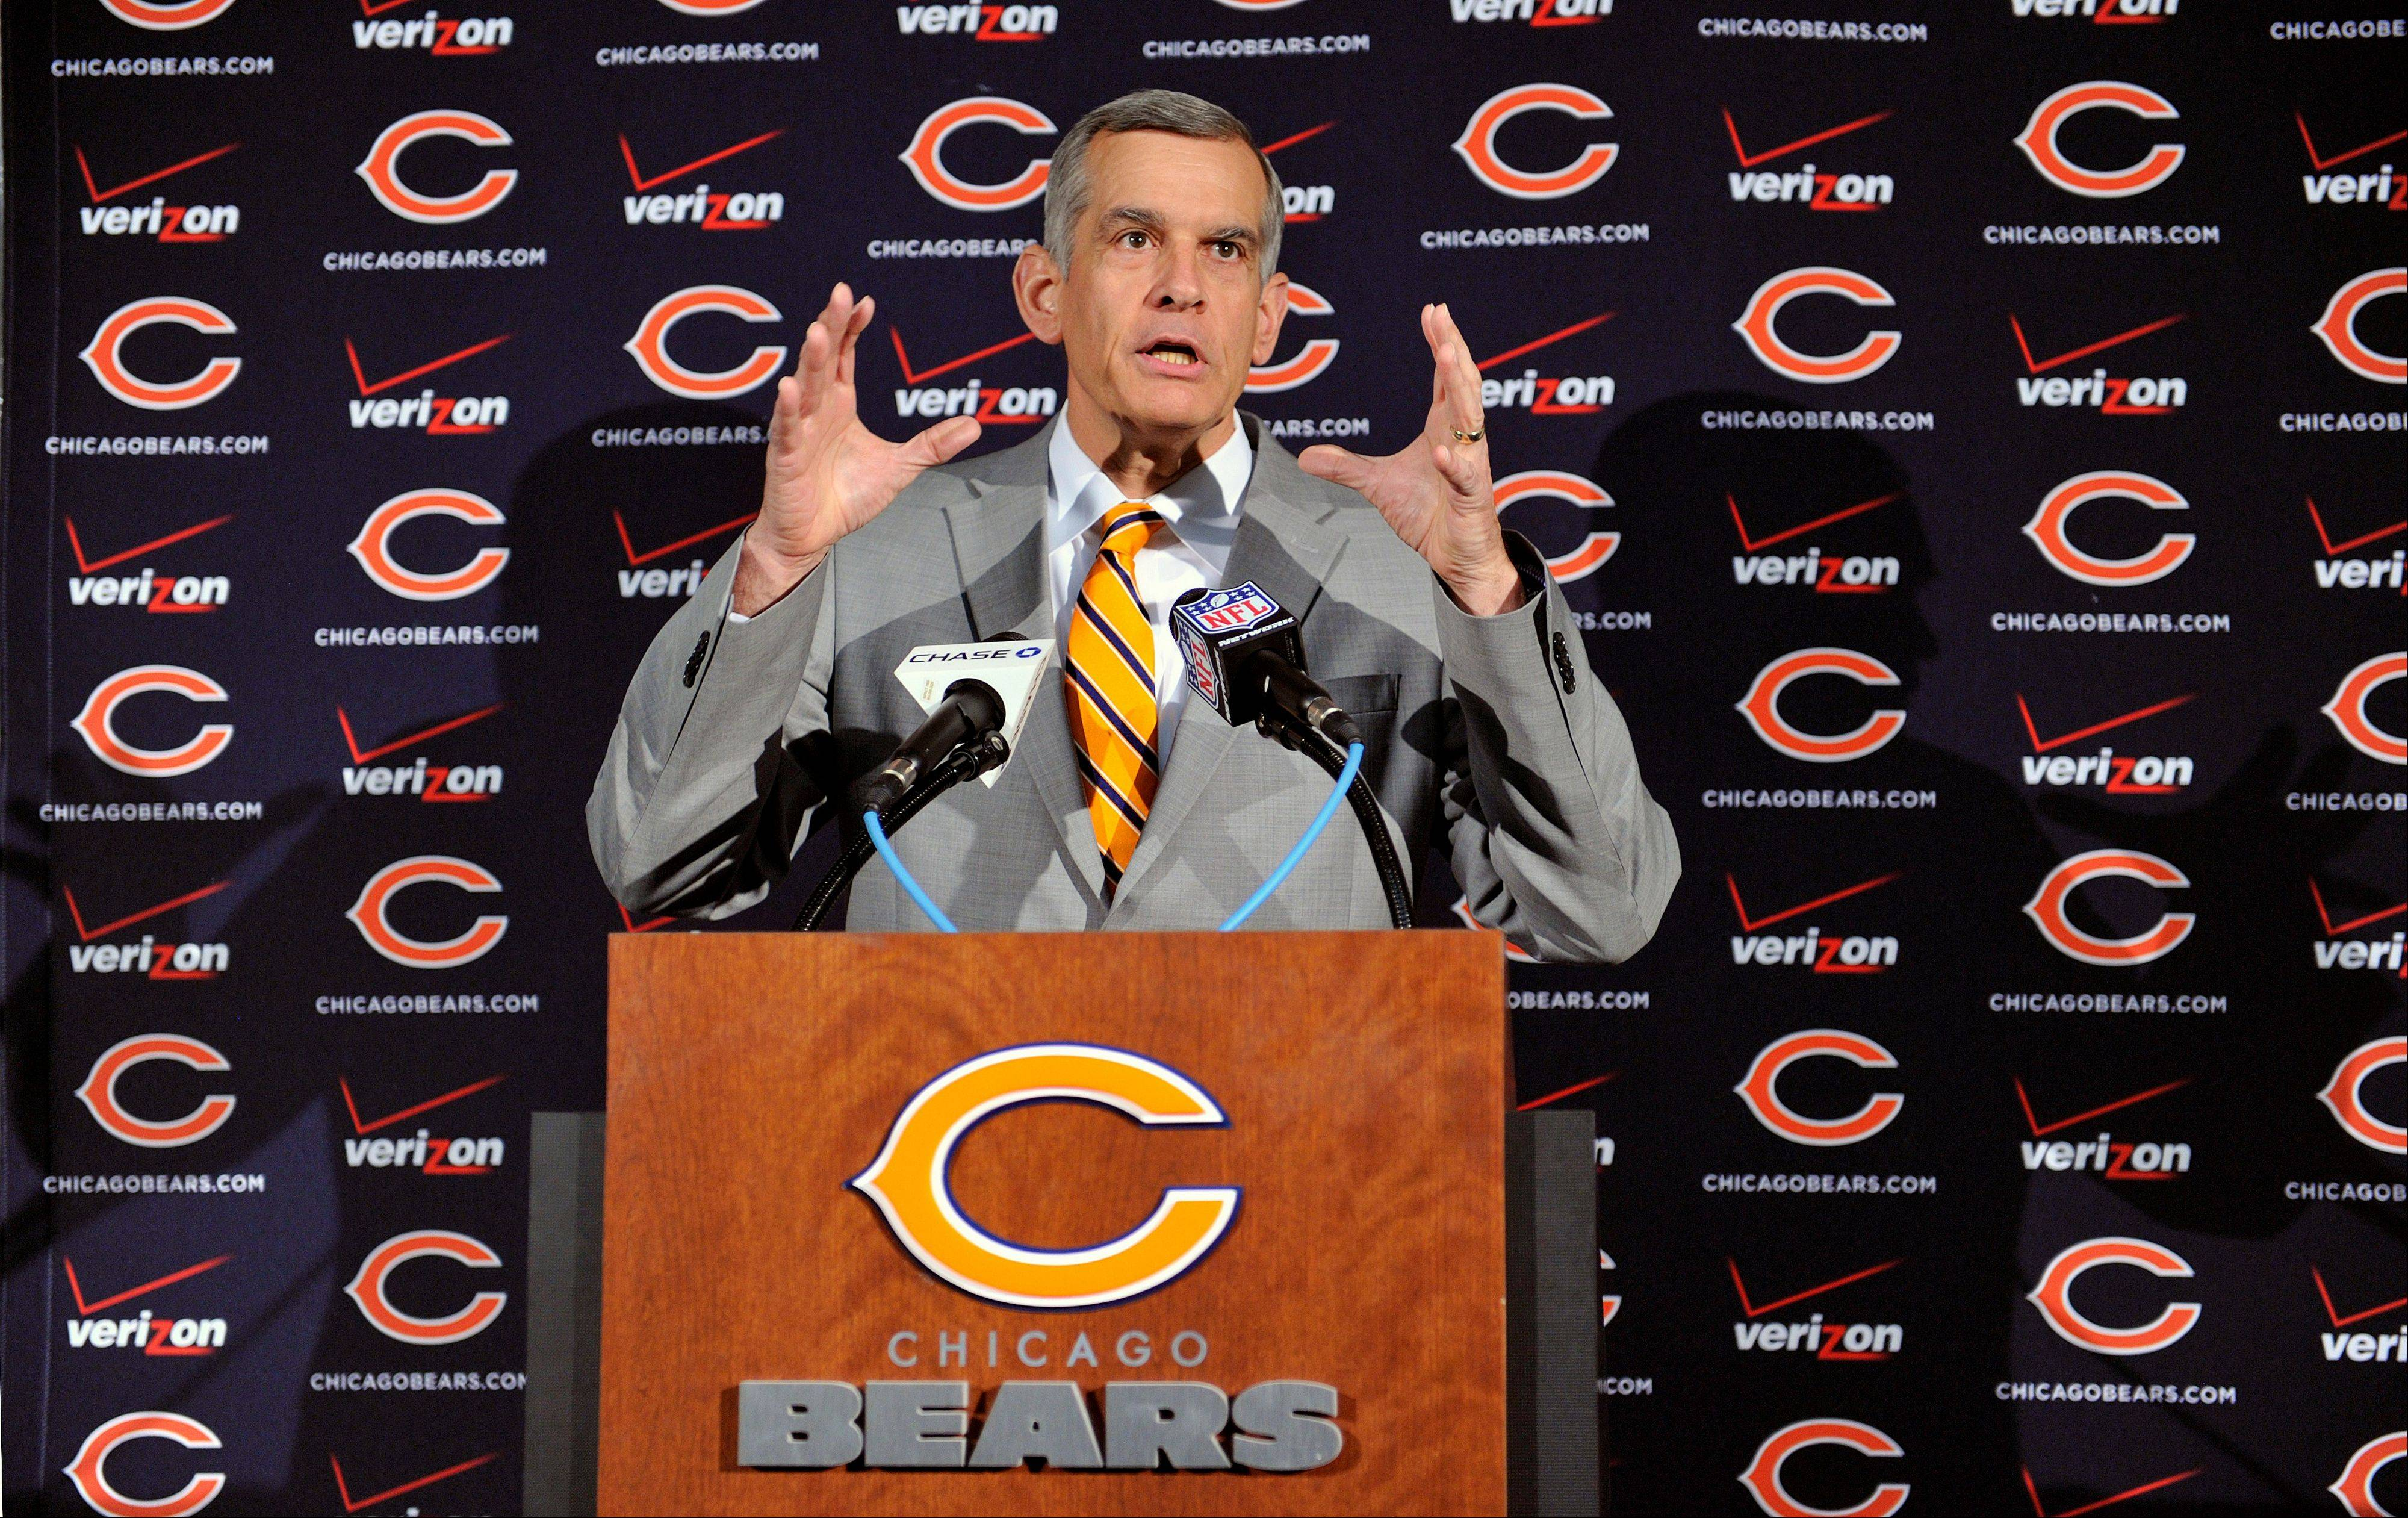 Bears general manager Phil Emery is not averse to trading down in the first round of the NFL draft if he can obtain extra draft picks in later rounds.